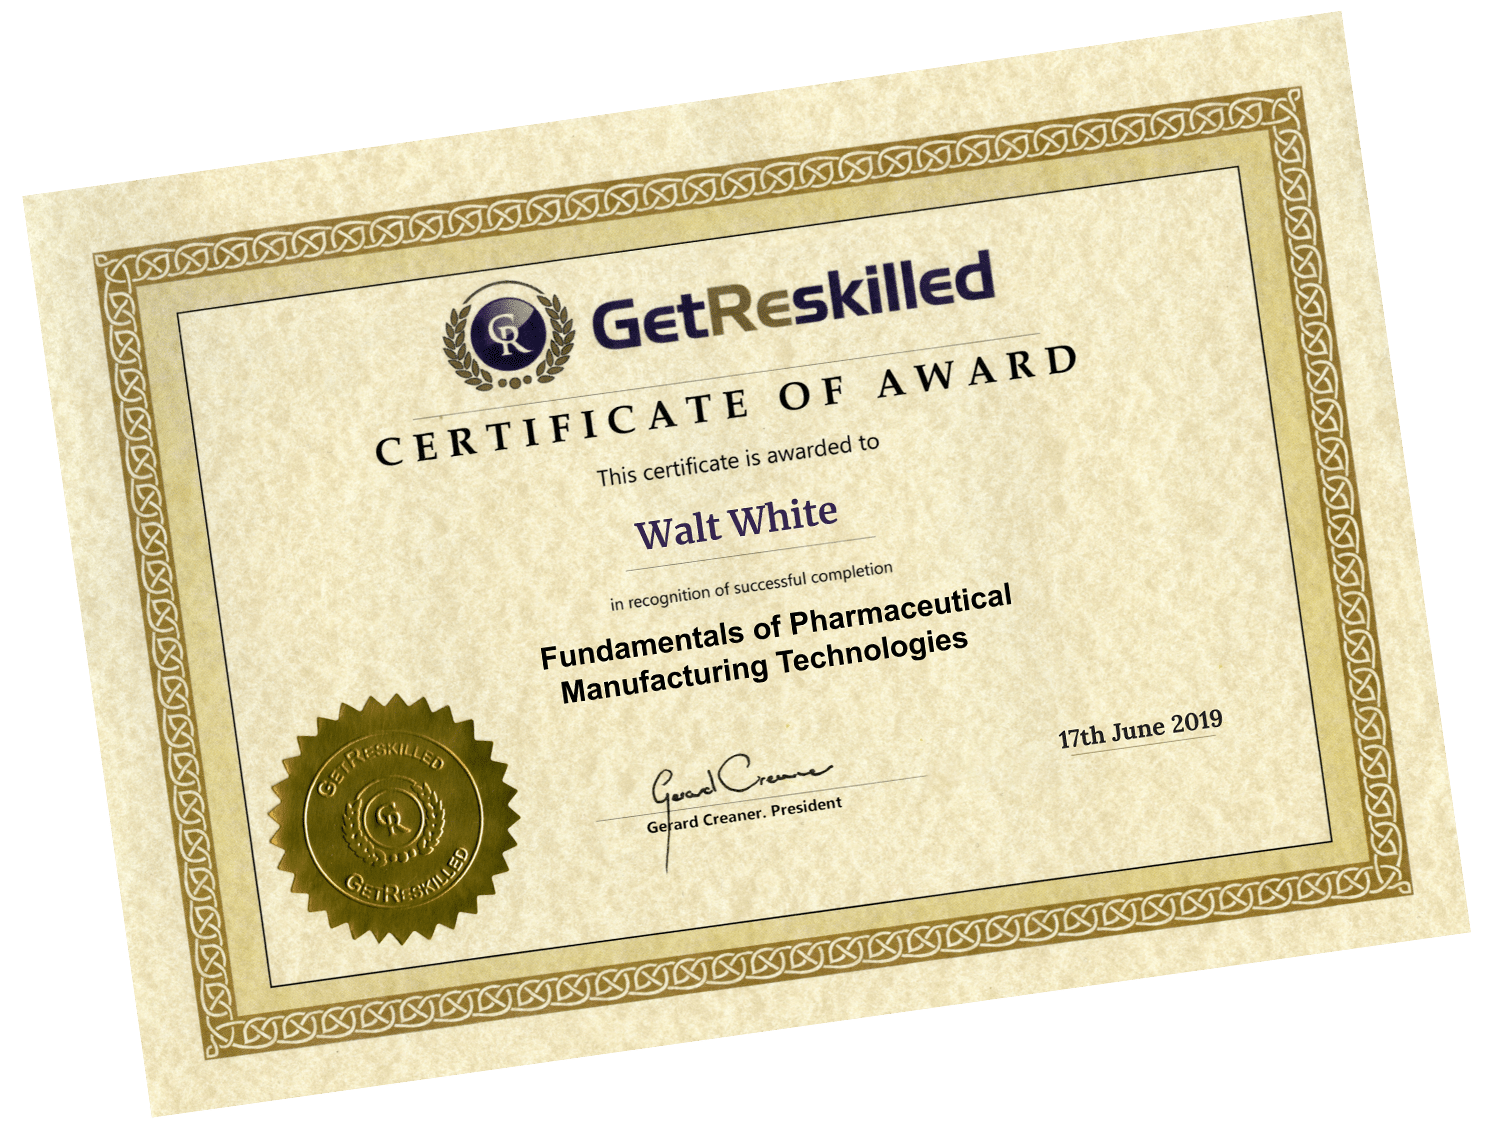 Fundamentals of Pharmaceutical Manufacturing Technologies Course Certificate